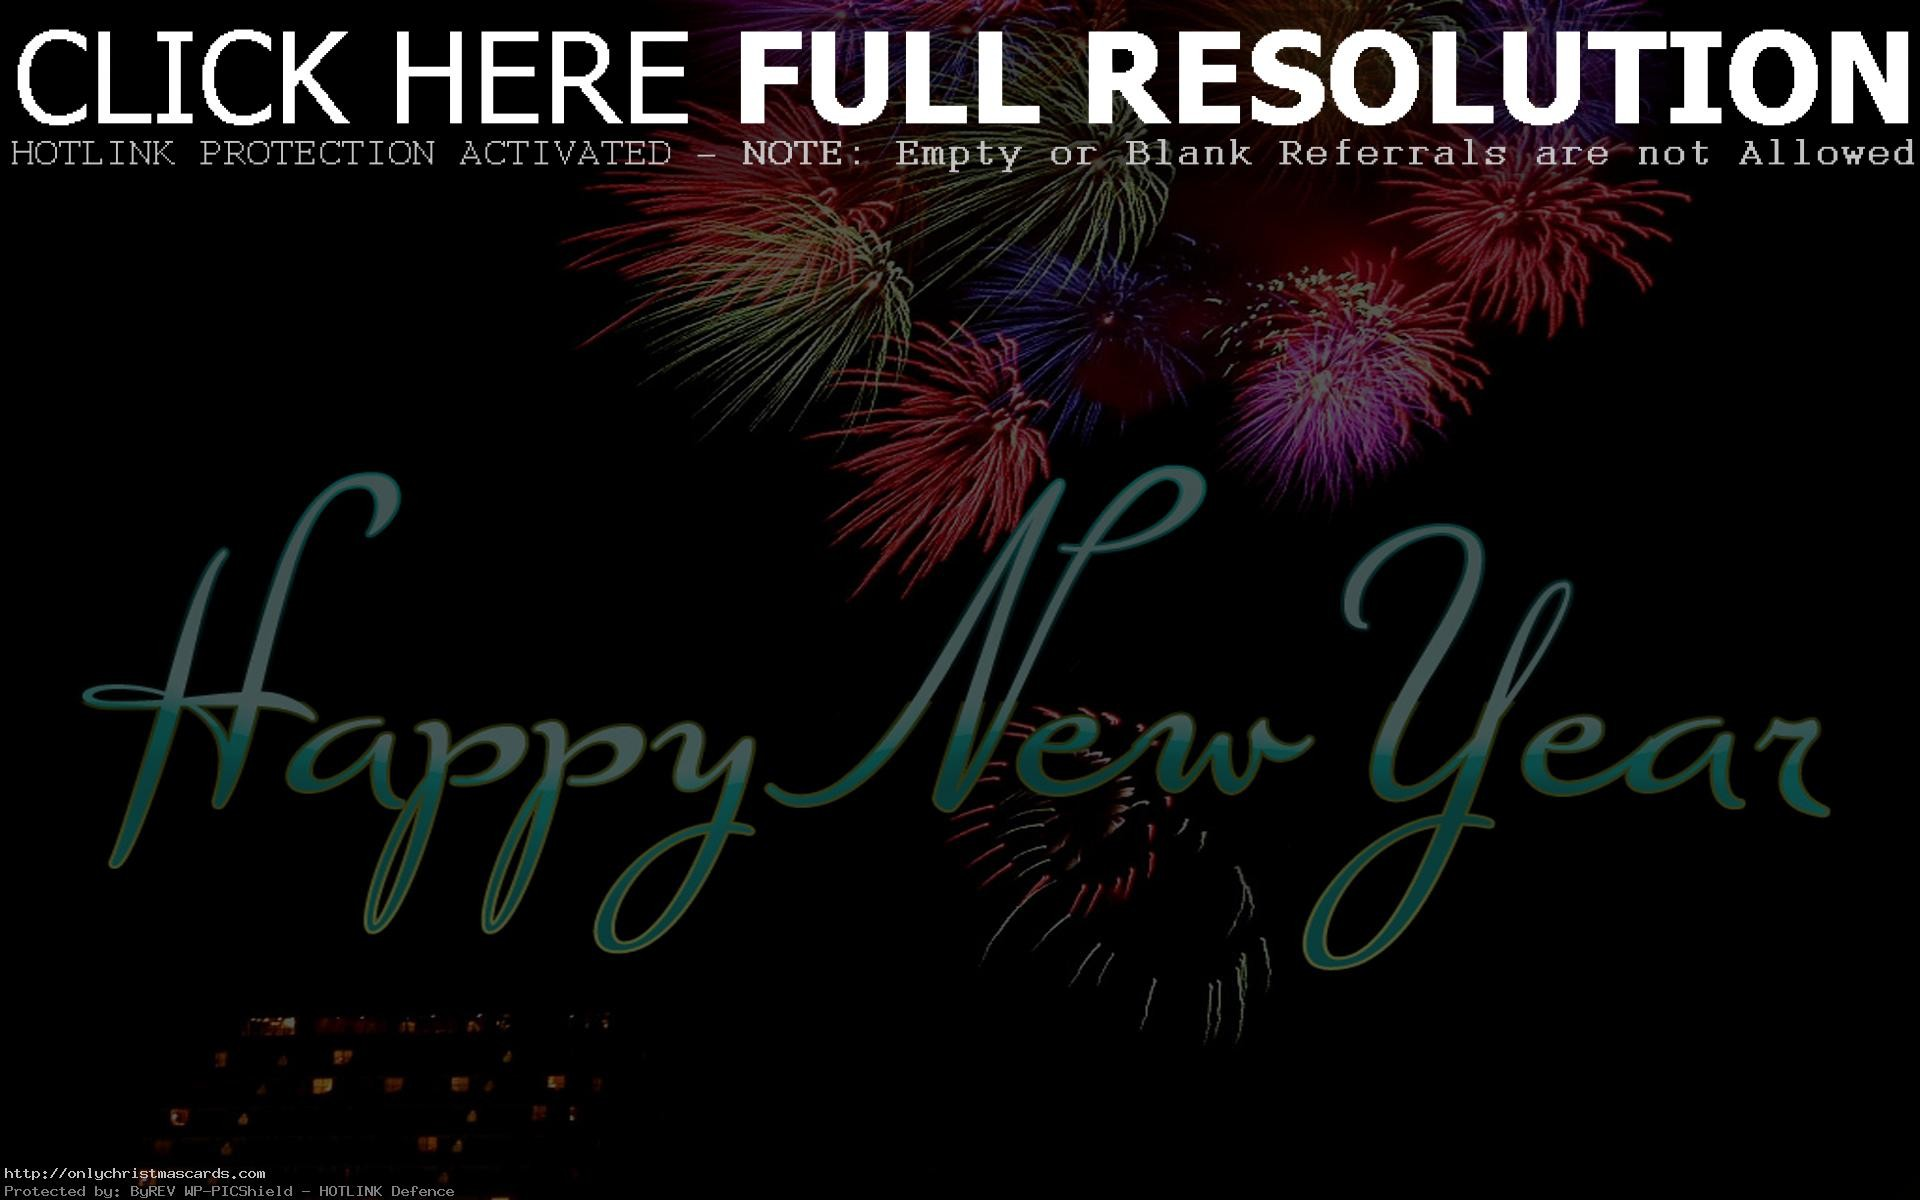 1920x1200 happy new year 2018 pics free download download 2560x1600 download original 2560x1600 download original